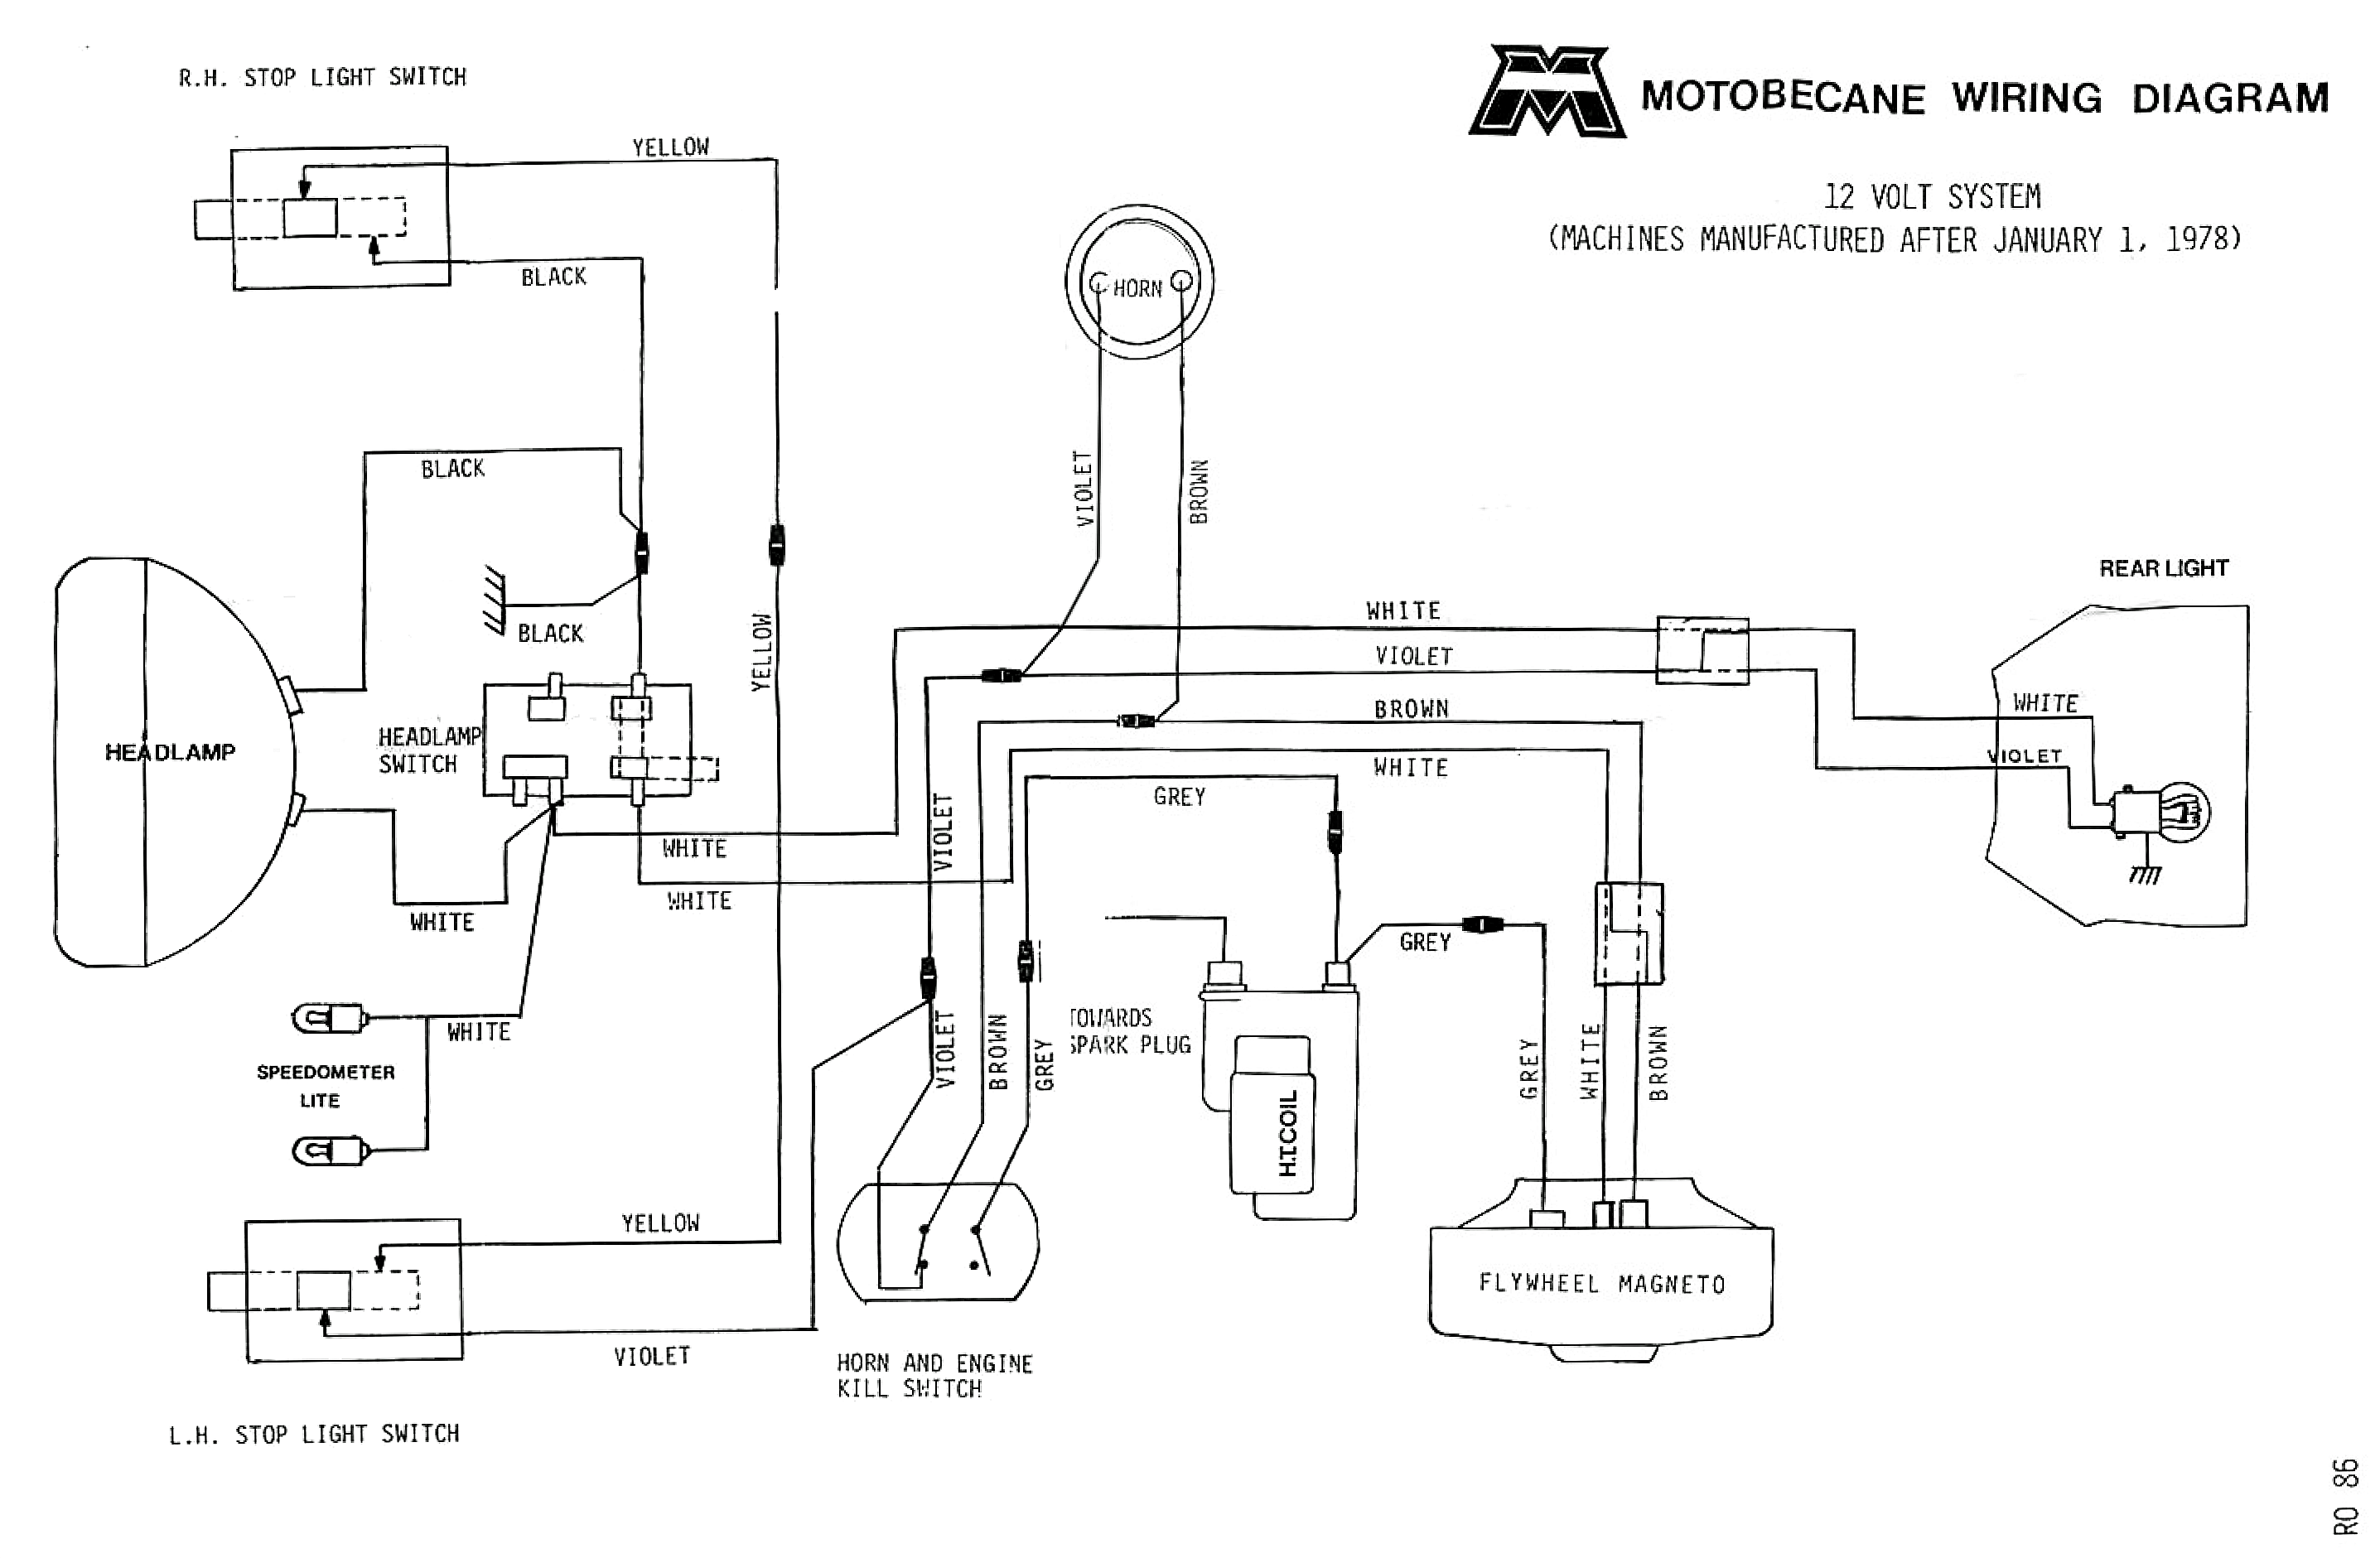 Motobecane12v_wiring_diagram motobecane wiring diagrams moped wiki 12 volt wire diagram at cos-gaming.co